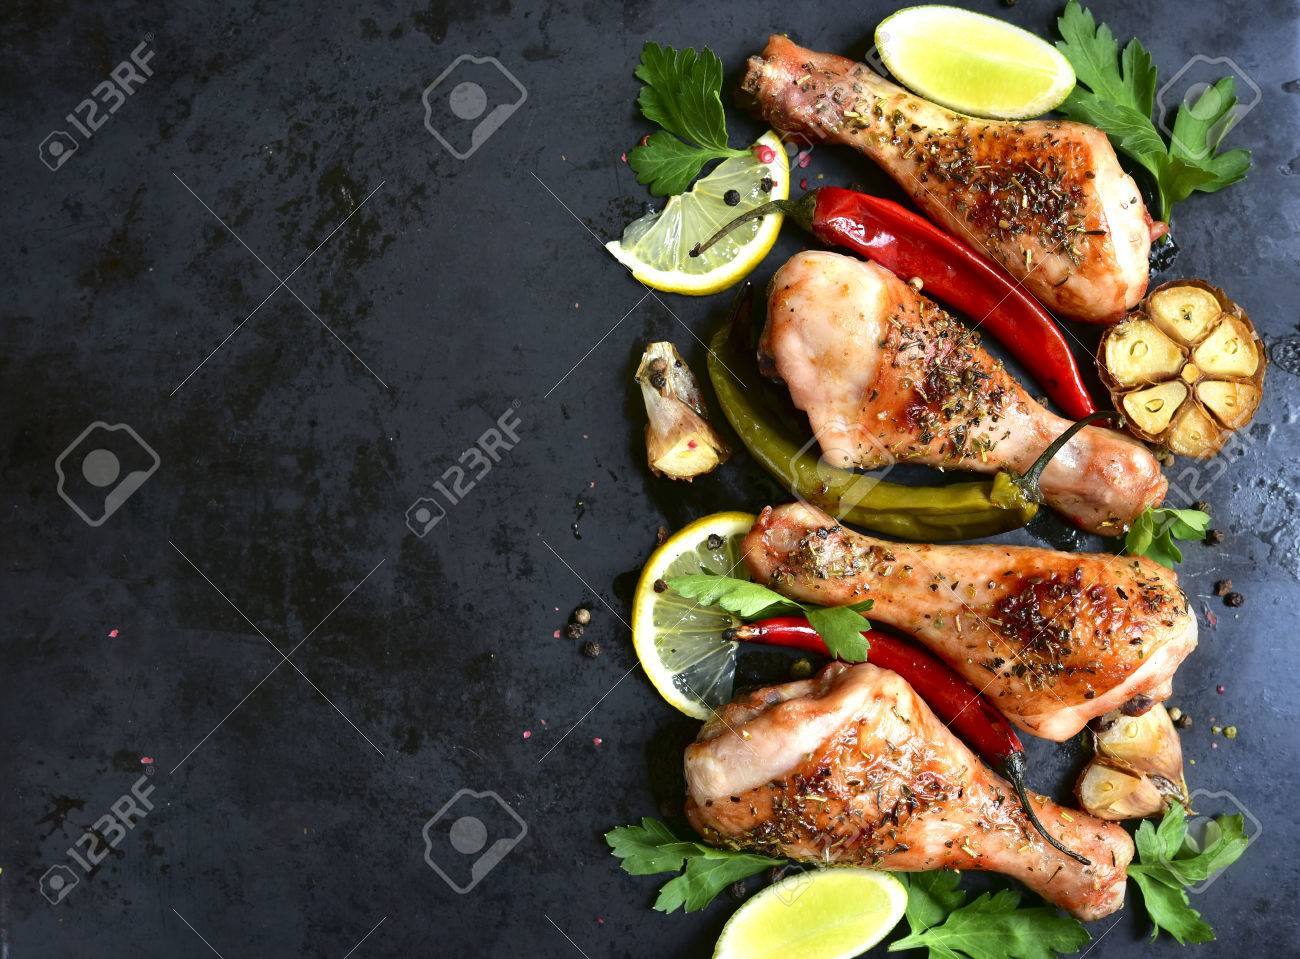 Grilled spicy chicken legs.Top view.Copy space background. - 52630309